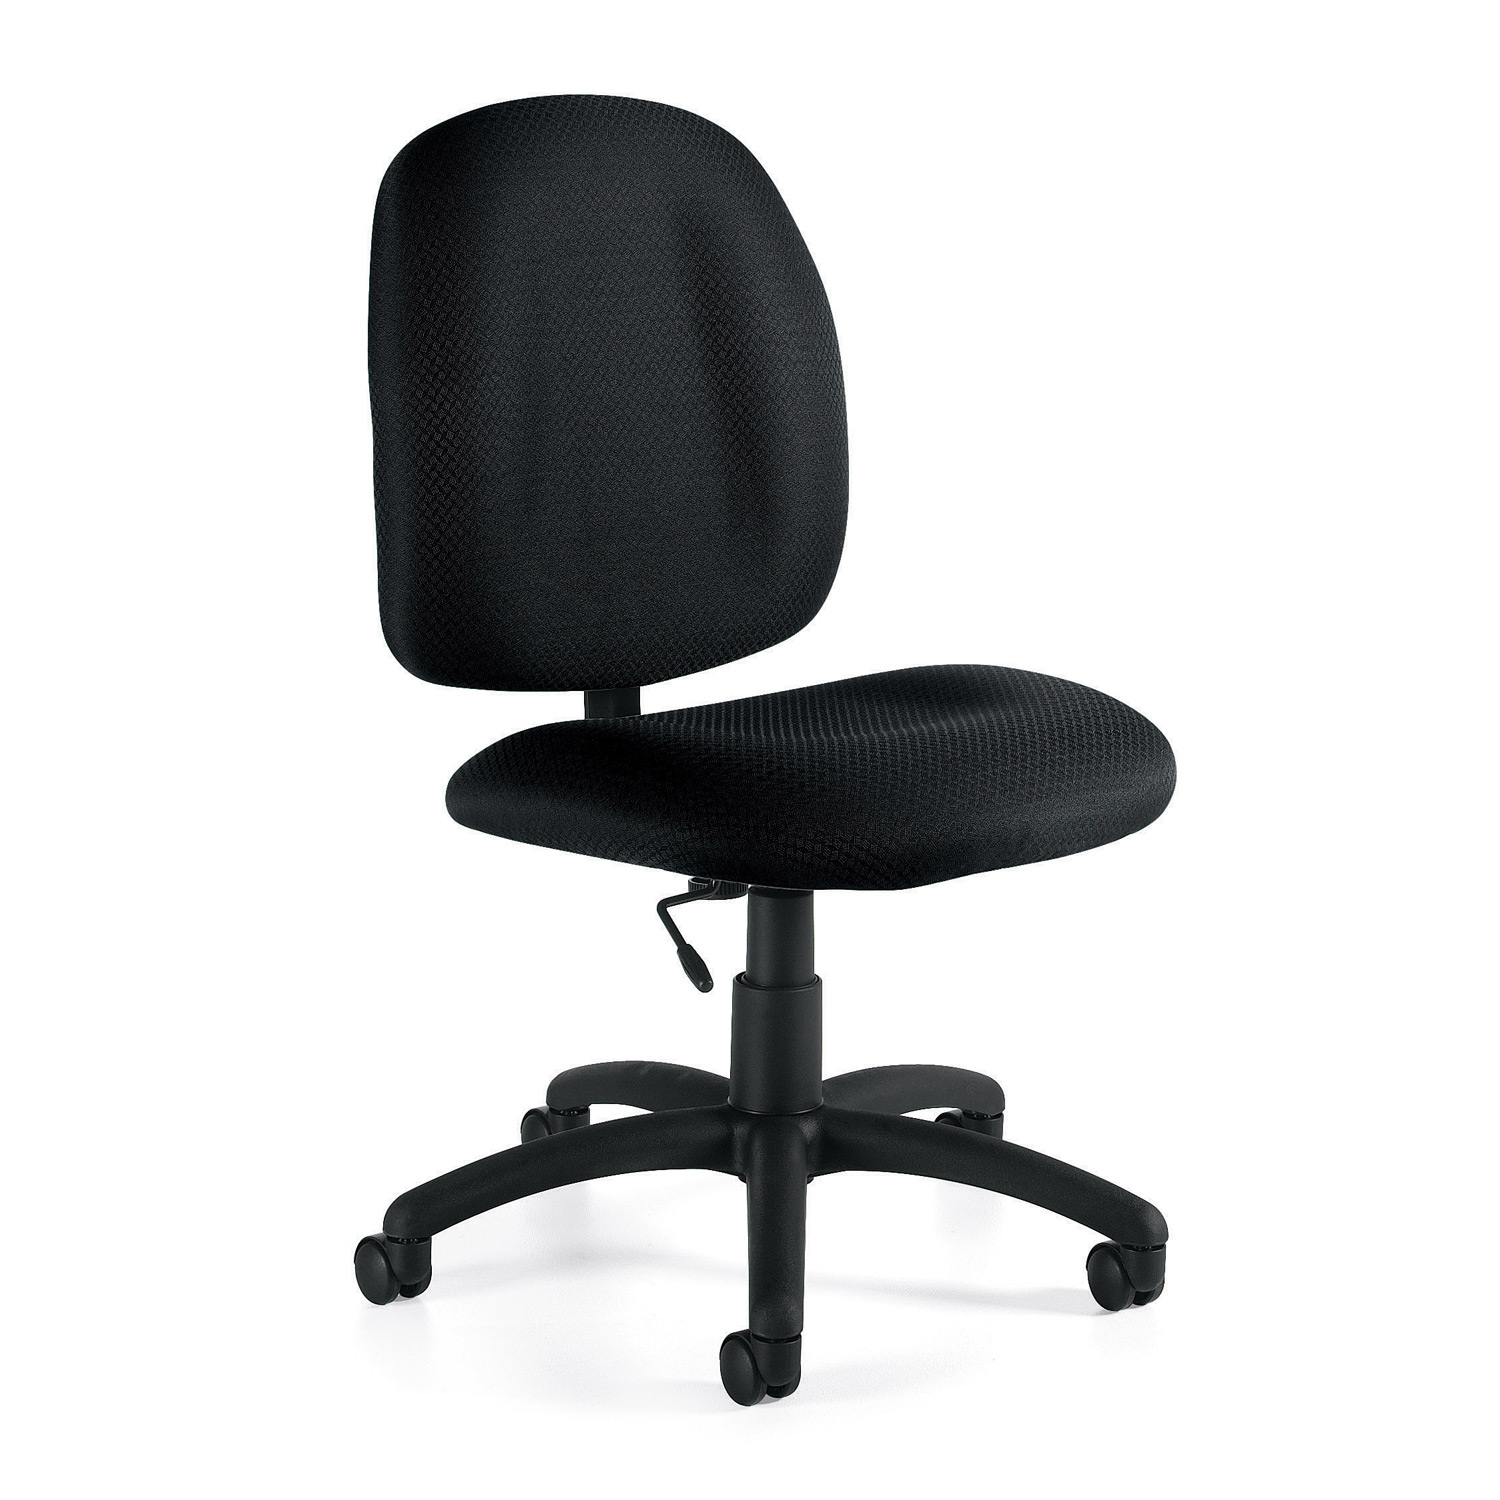 The Best Ideas for Cheap Desk Chair  Best Collections